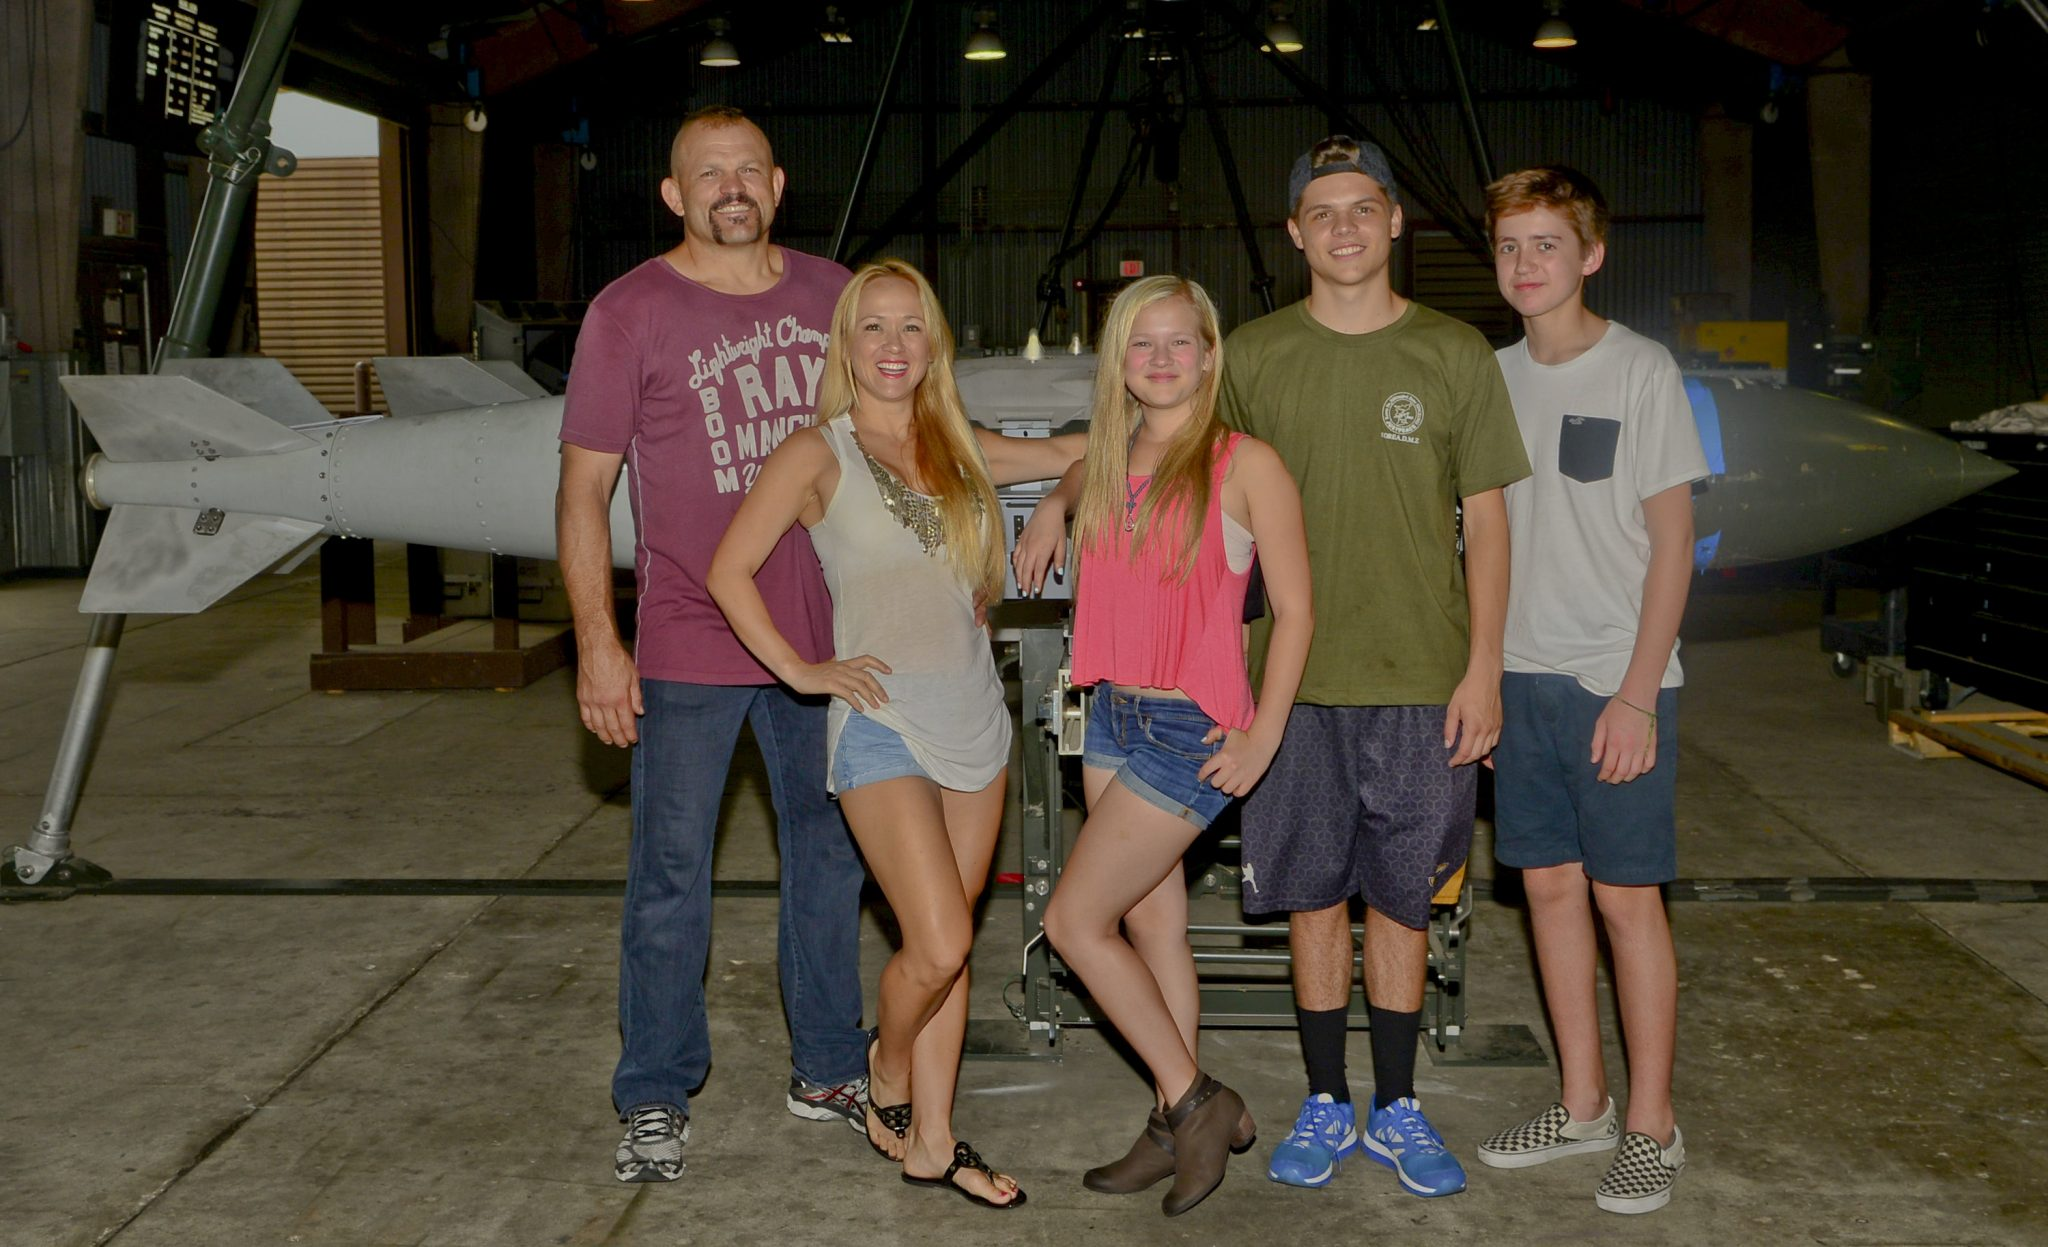 "The Liddell family poses for a photo on Osan Air Base, South Korea, Aug. 5, 2015. Chuck ""The Iceman"" Liddell, retired American mixed martial artist, and his family visited various units across the base including fire department, the fitness center, and the munitions section during a morale trip. Liddell is a former Ultimate Fighting Championship Light Heavyweight Champion. (U.S. Air Force photo/Senior Airman Kristin High)"